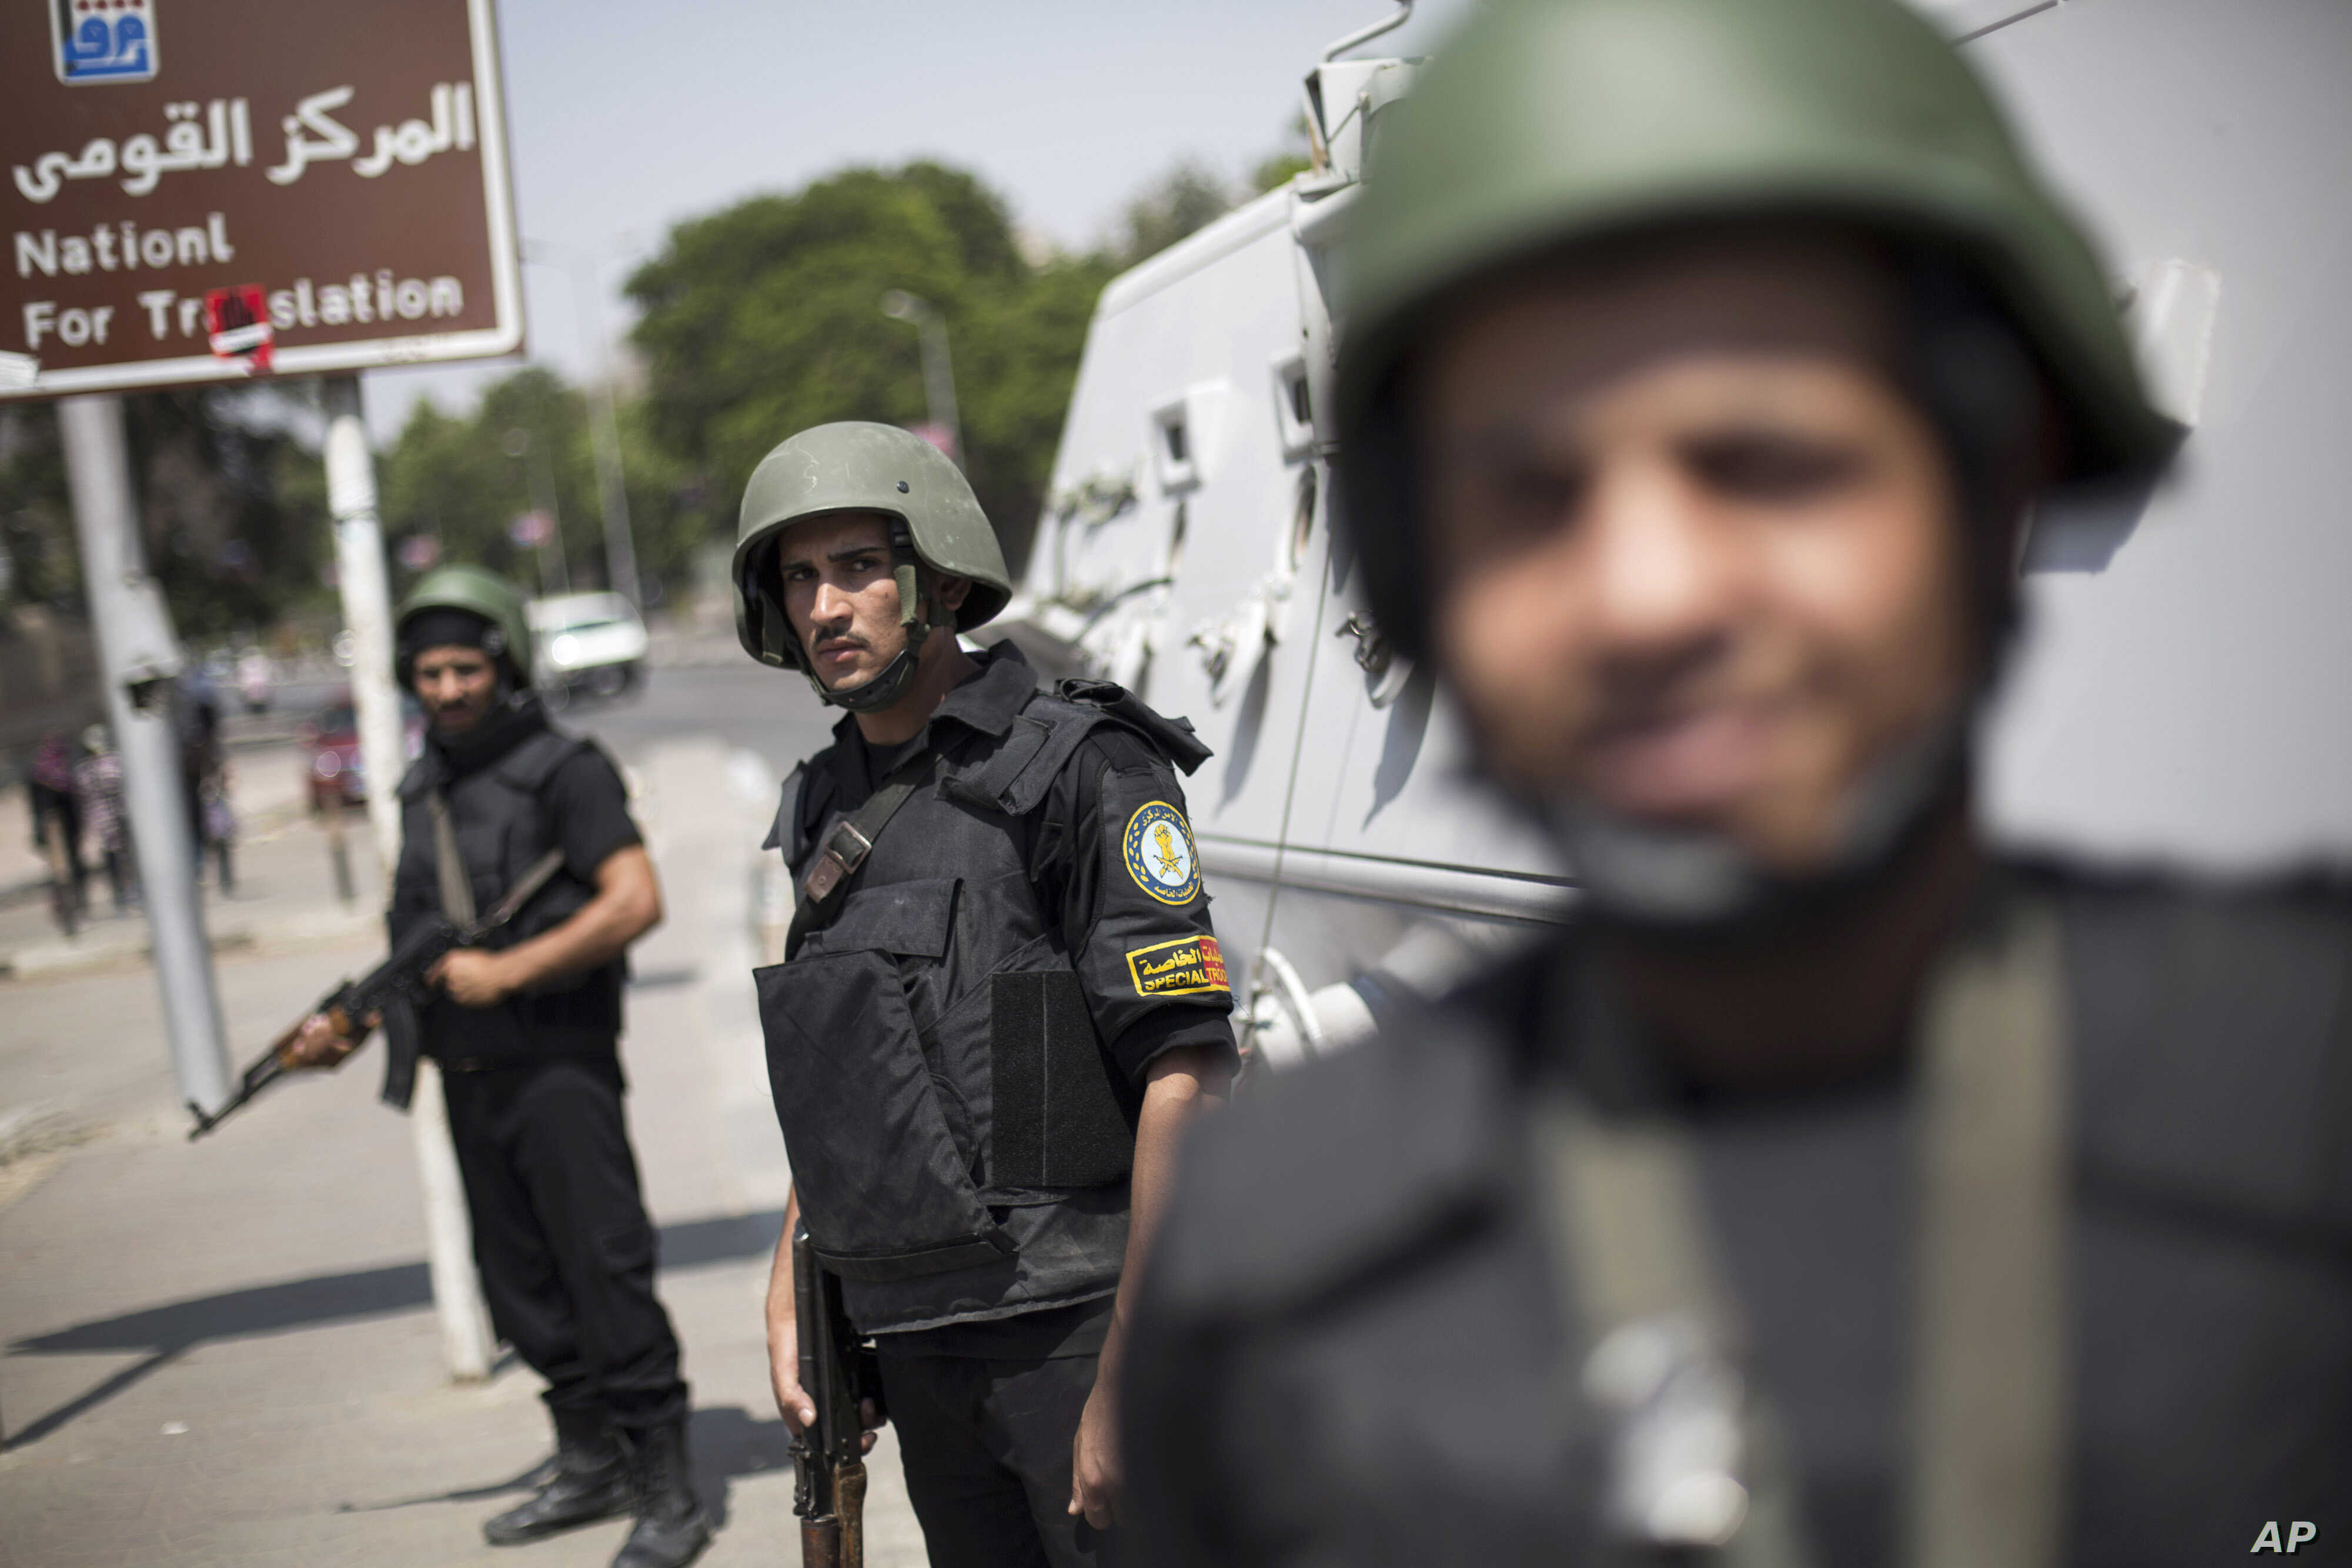 Egyptian police special forces stand guard beside an armored vehicle, protecting a bridge between Tahrir Square and Cairo University, where Muslim Brotherhood supporters have gathered, in Giza, Egypt, July 3, 2013.